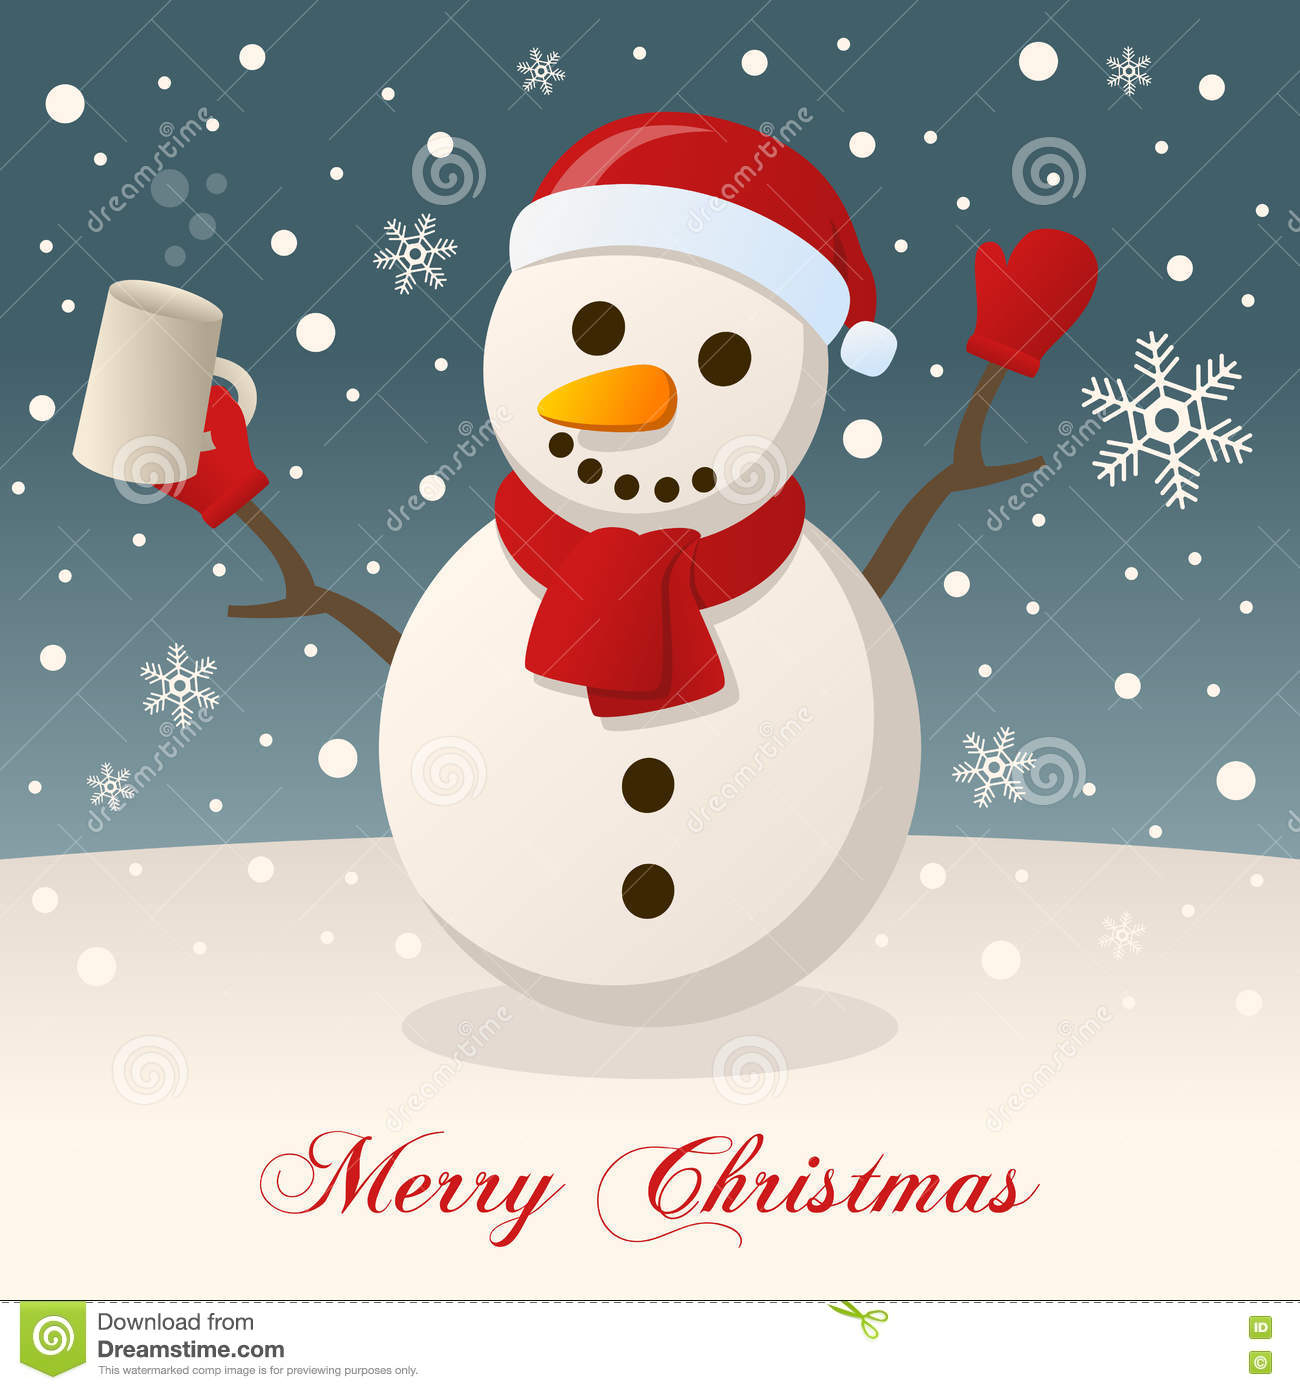 Merry Christmas With Drunk Snowman Stock Vector Illustration Of